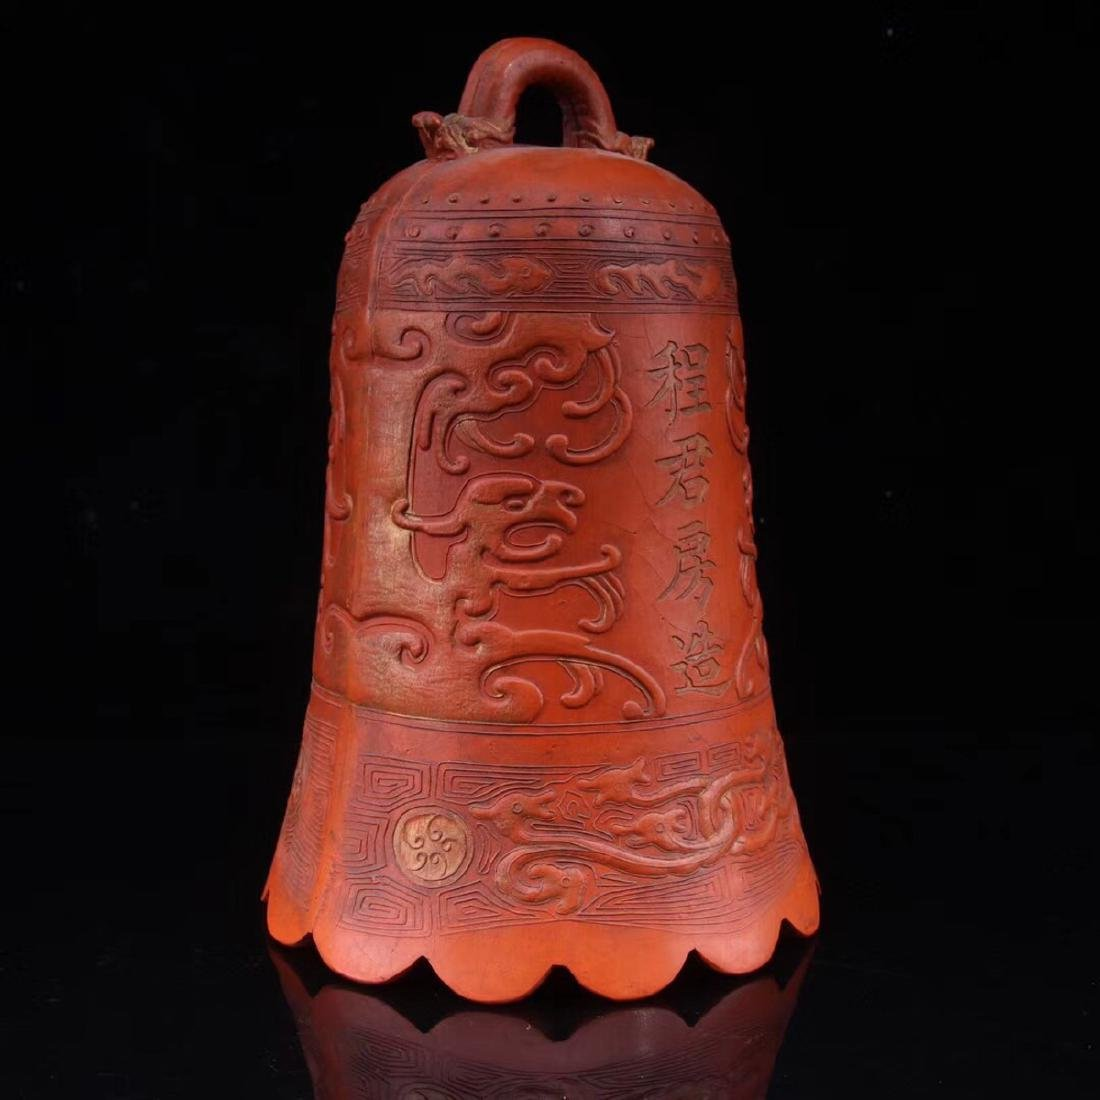 A ZHUSHA CARVED BELL SHAPED DECORATION - 2